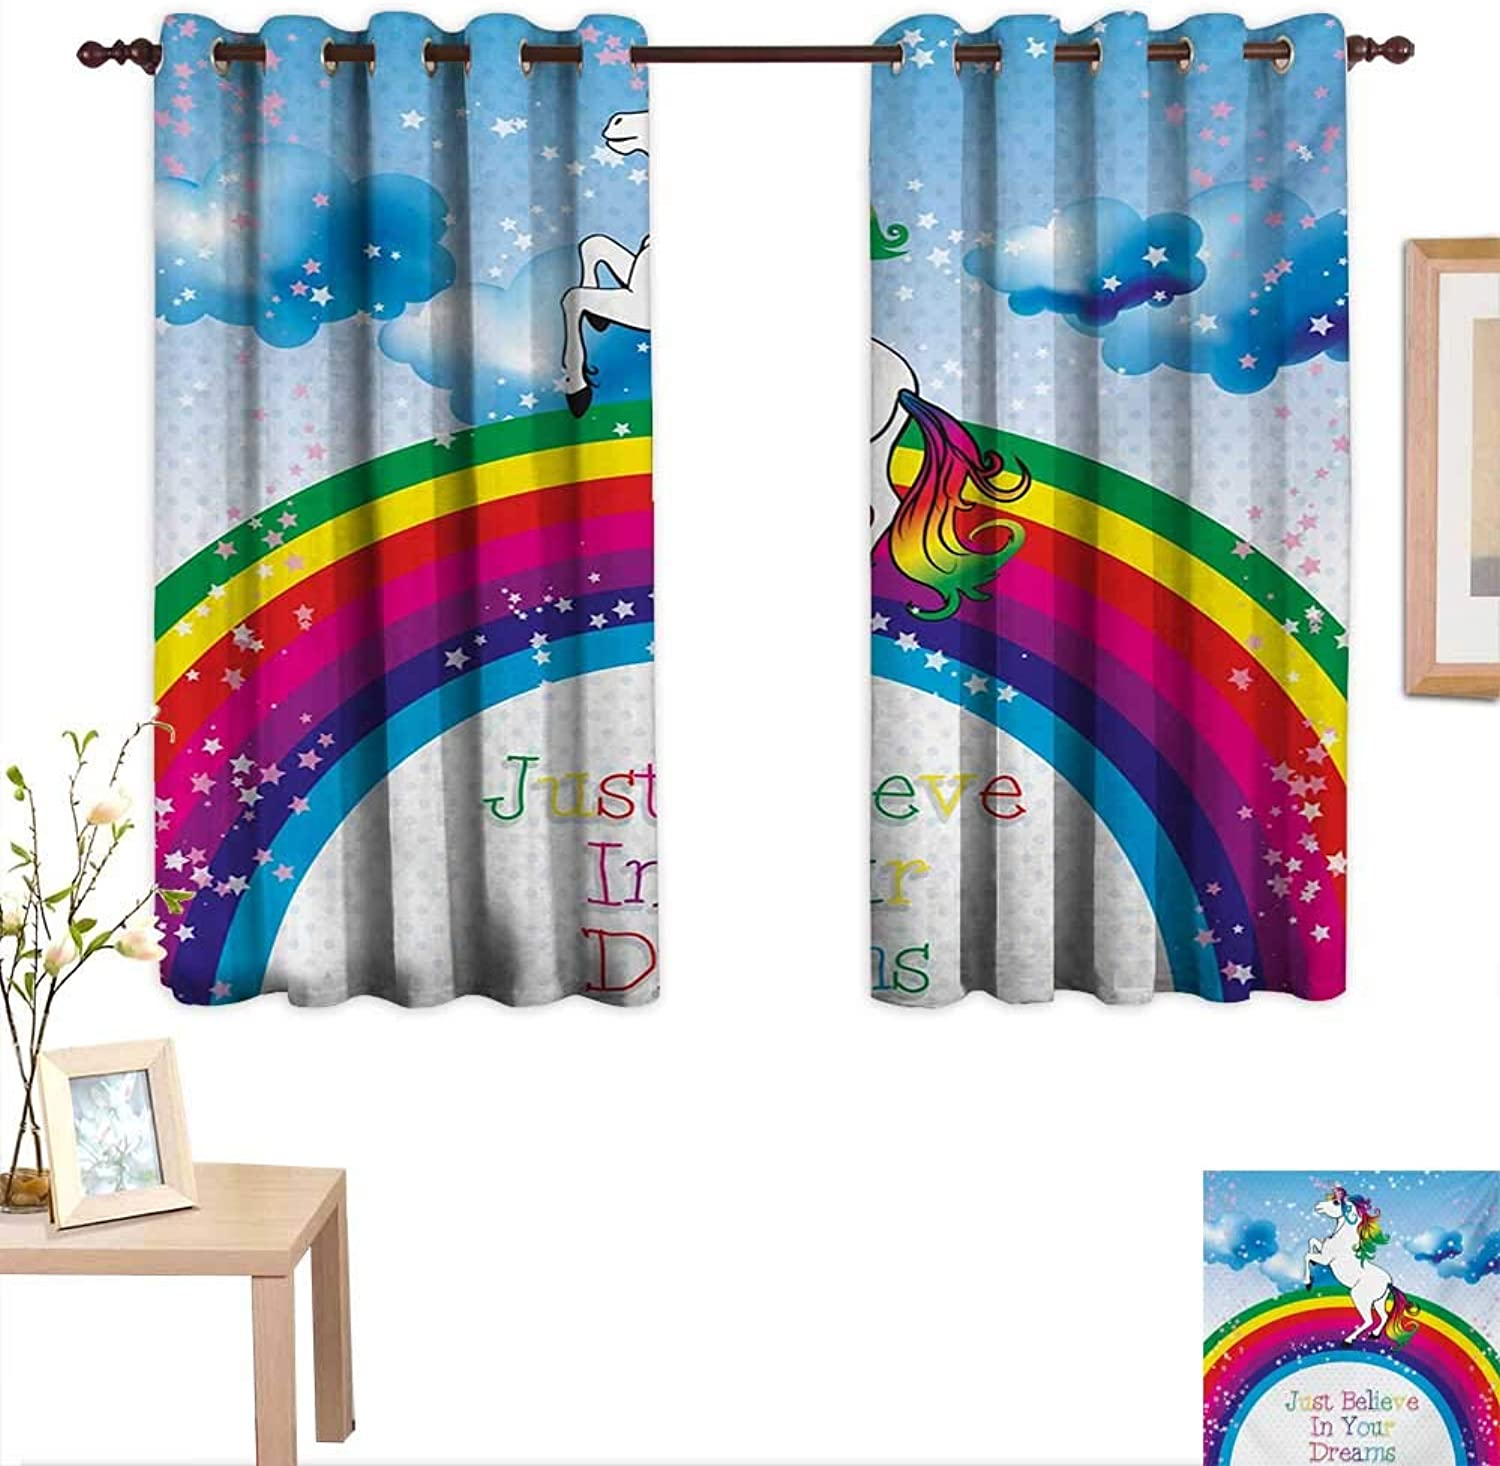 BlountDecor Kids Decor Curtains by Unicorn Surreal Myth Creature Before Rainbow Clouds Star Fantasy Girls Fairytale Image 55 x 45 ,Suitable for Bedroom Living Room Study, etc.